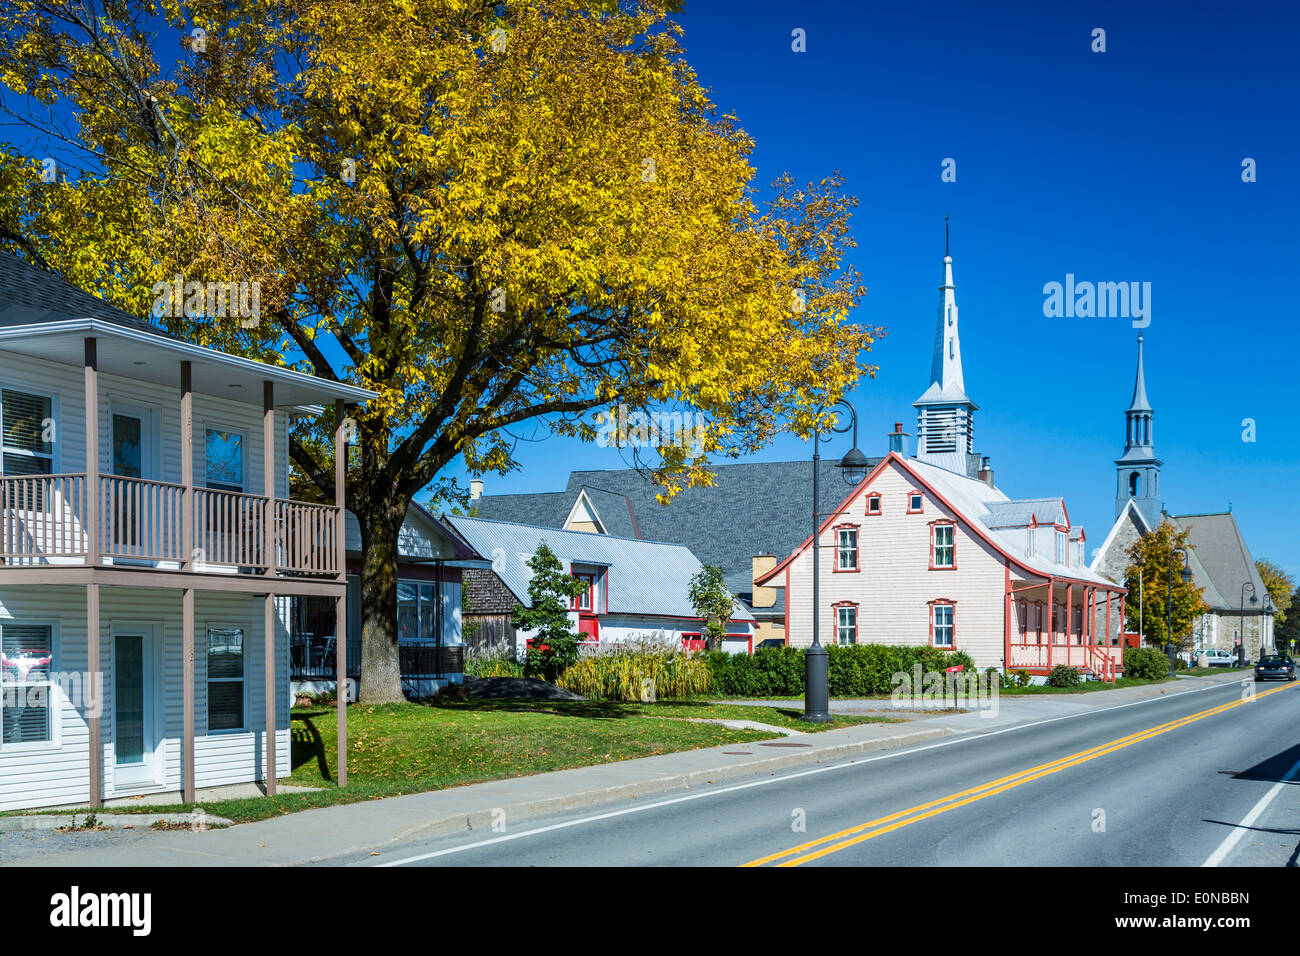 A street with homes and a church in the village of Saint Pierre on the island of Ile d' Orleans, Quebec, Canada. - Stock Image